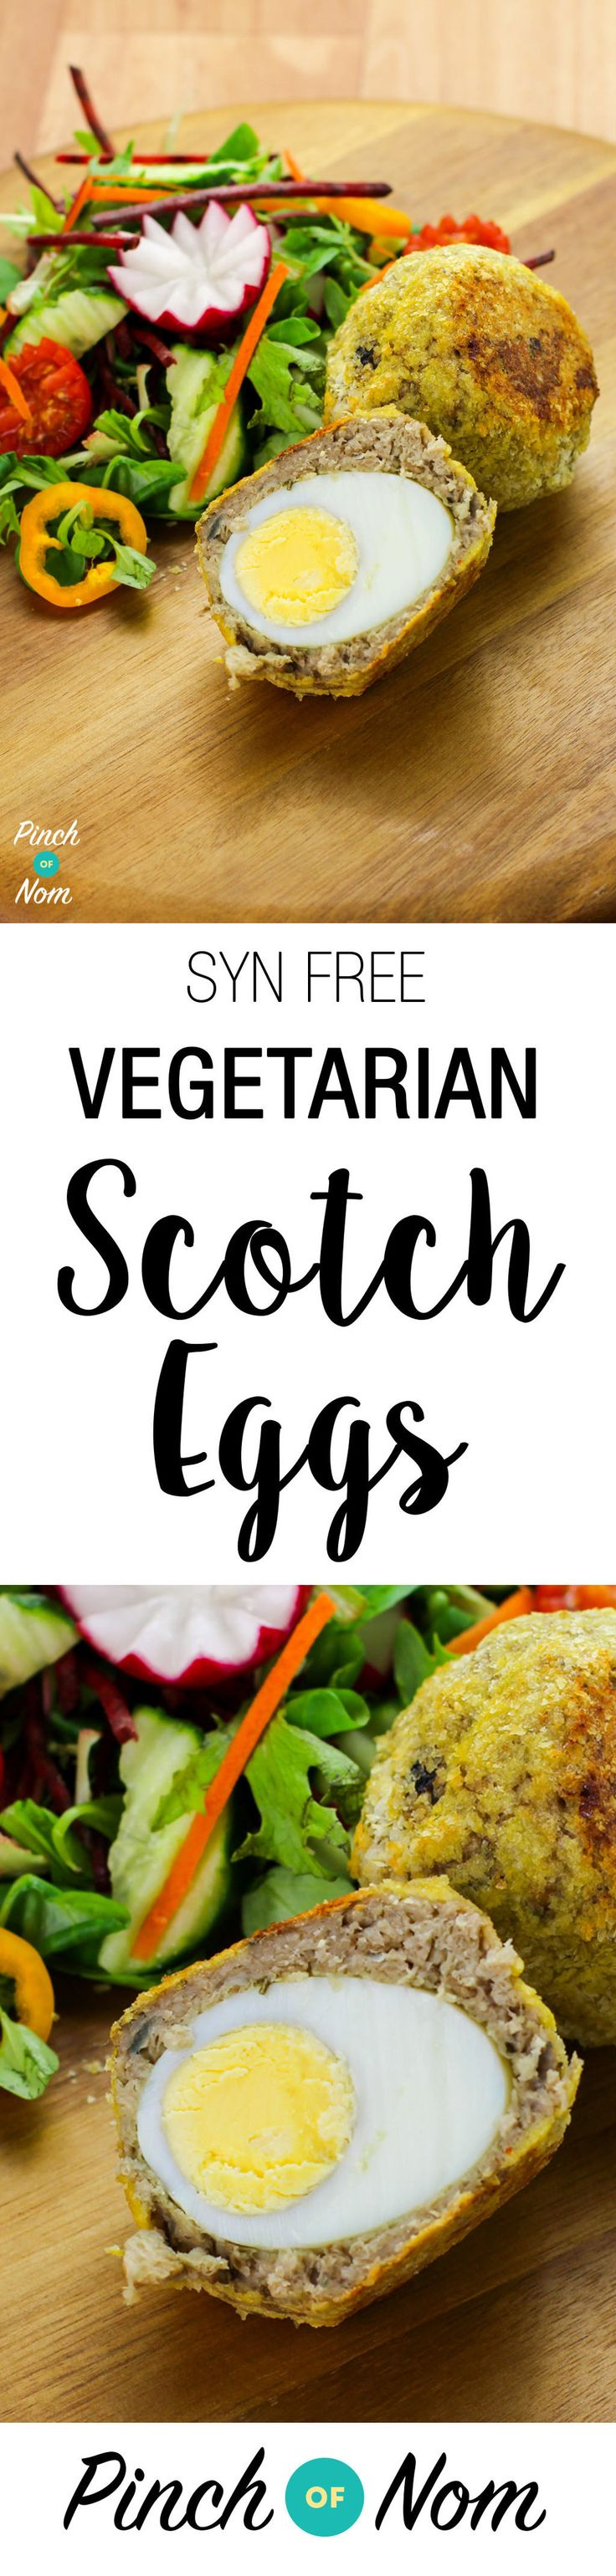 You may have seen our recipe for Scotch Eggs, that we posted yesterday, but what if you don't eat meat? Don't worry we've got this Syn Free Vegetarian Scotch Eggs recipe just for you. A few months ago we started a Facebook Group for those people who wanted to talk to us about not only…